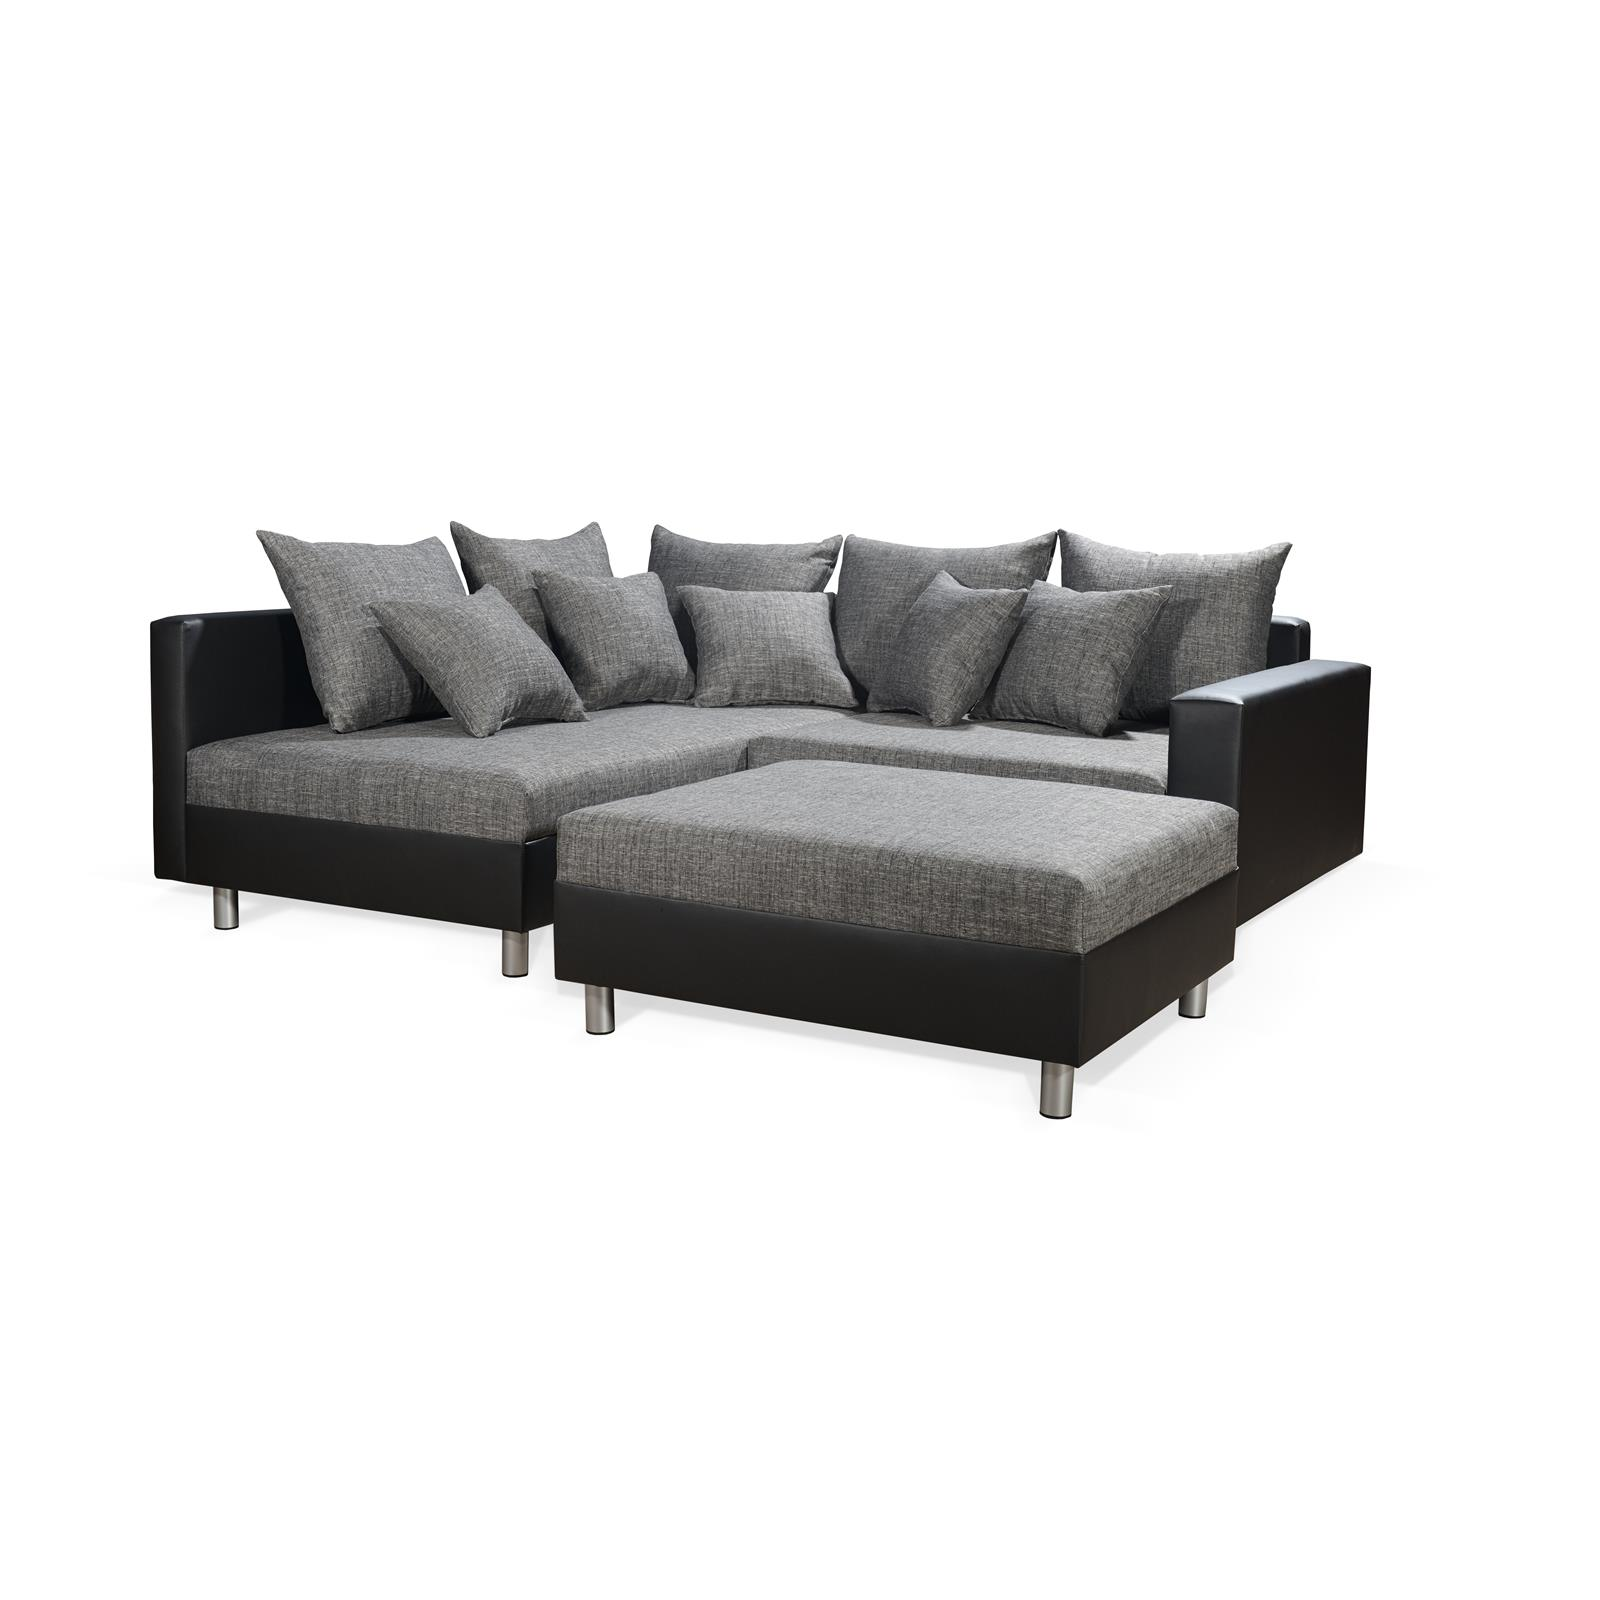 big sofa leder big sofa leder schwarz carprola for big sofa leder schwarz carprola for big. Black Bedroom Furniture Sets. Home Design Ideas